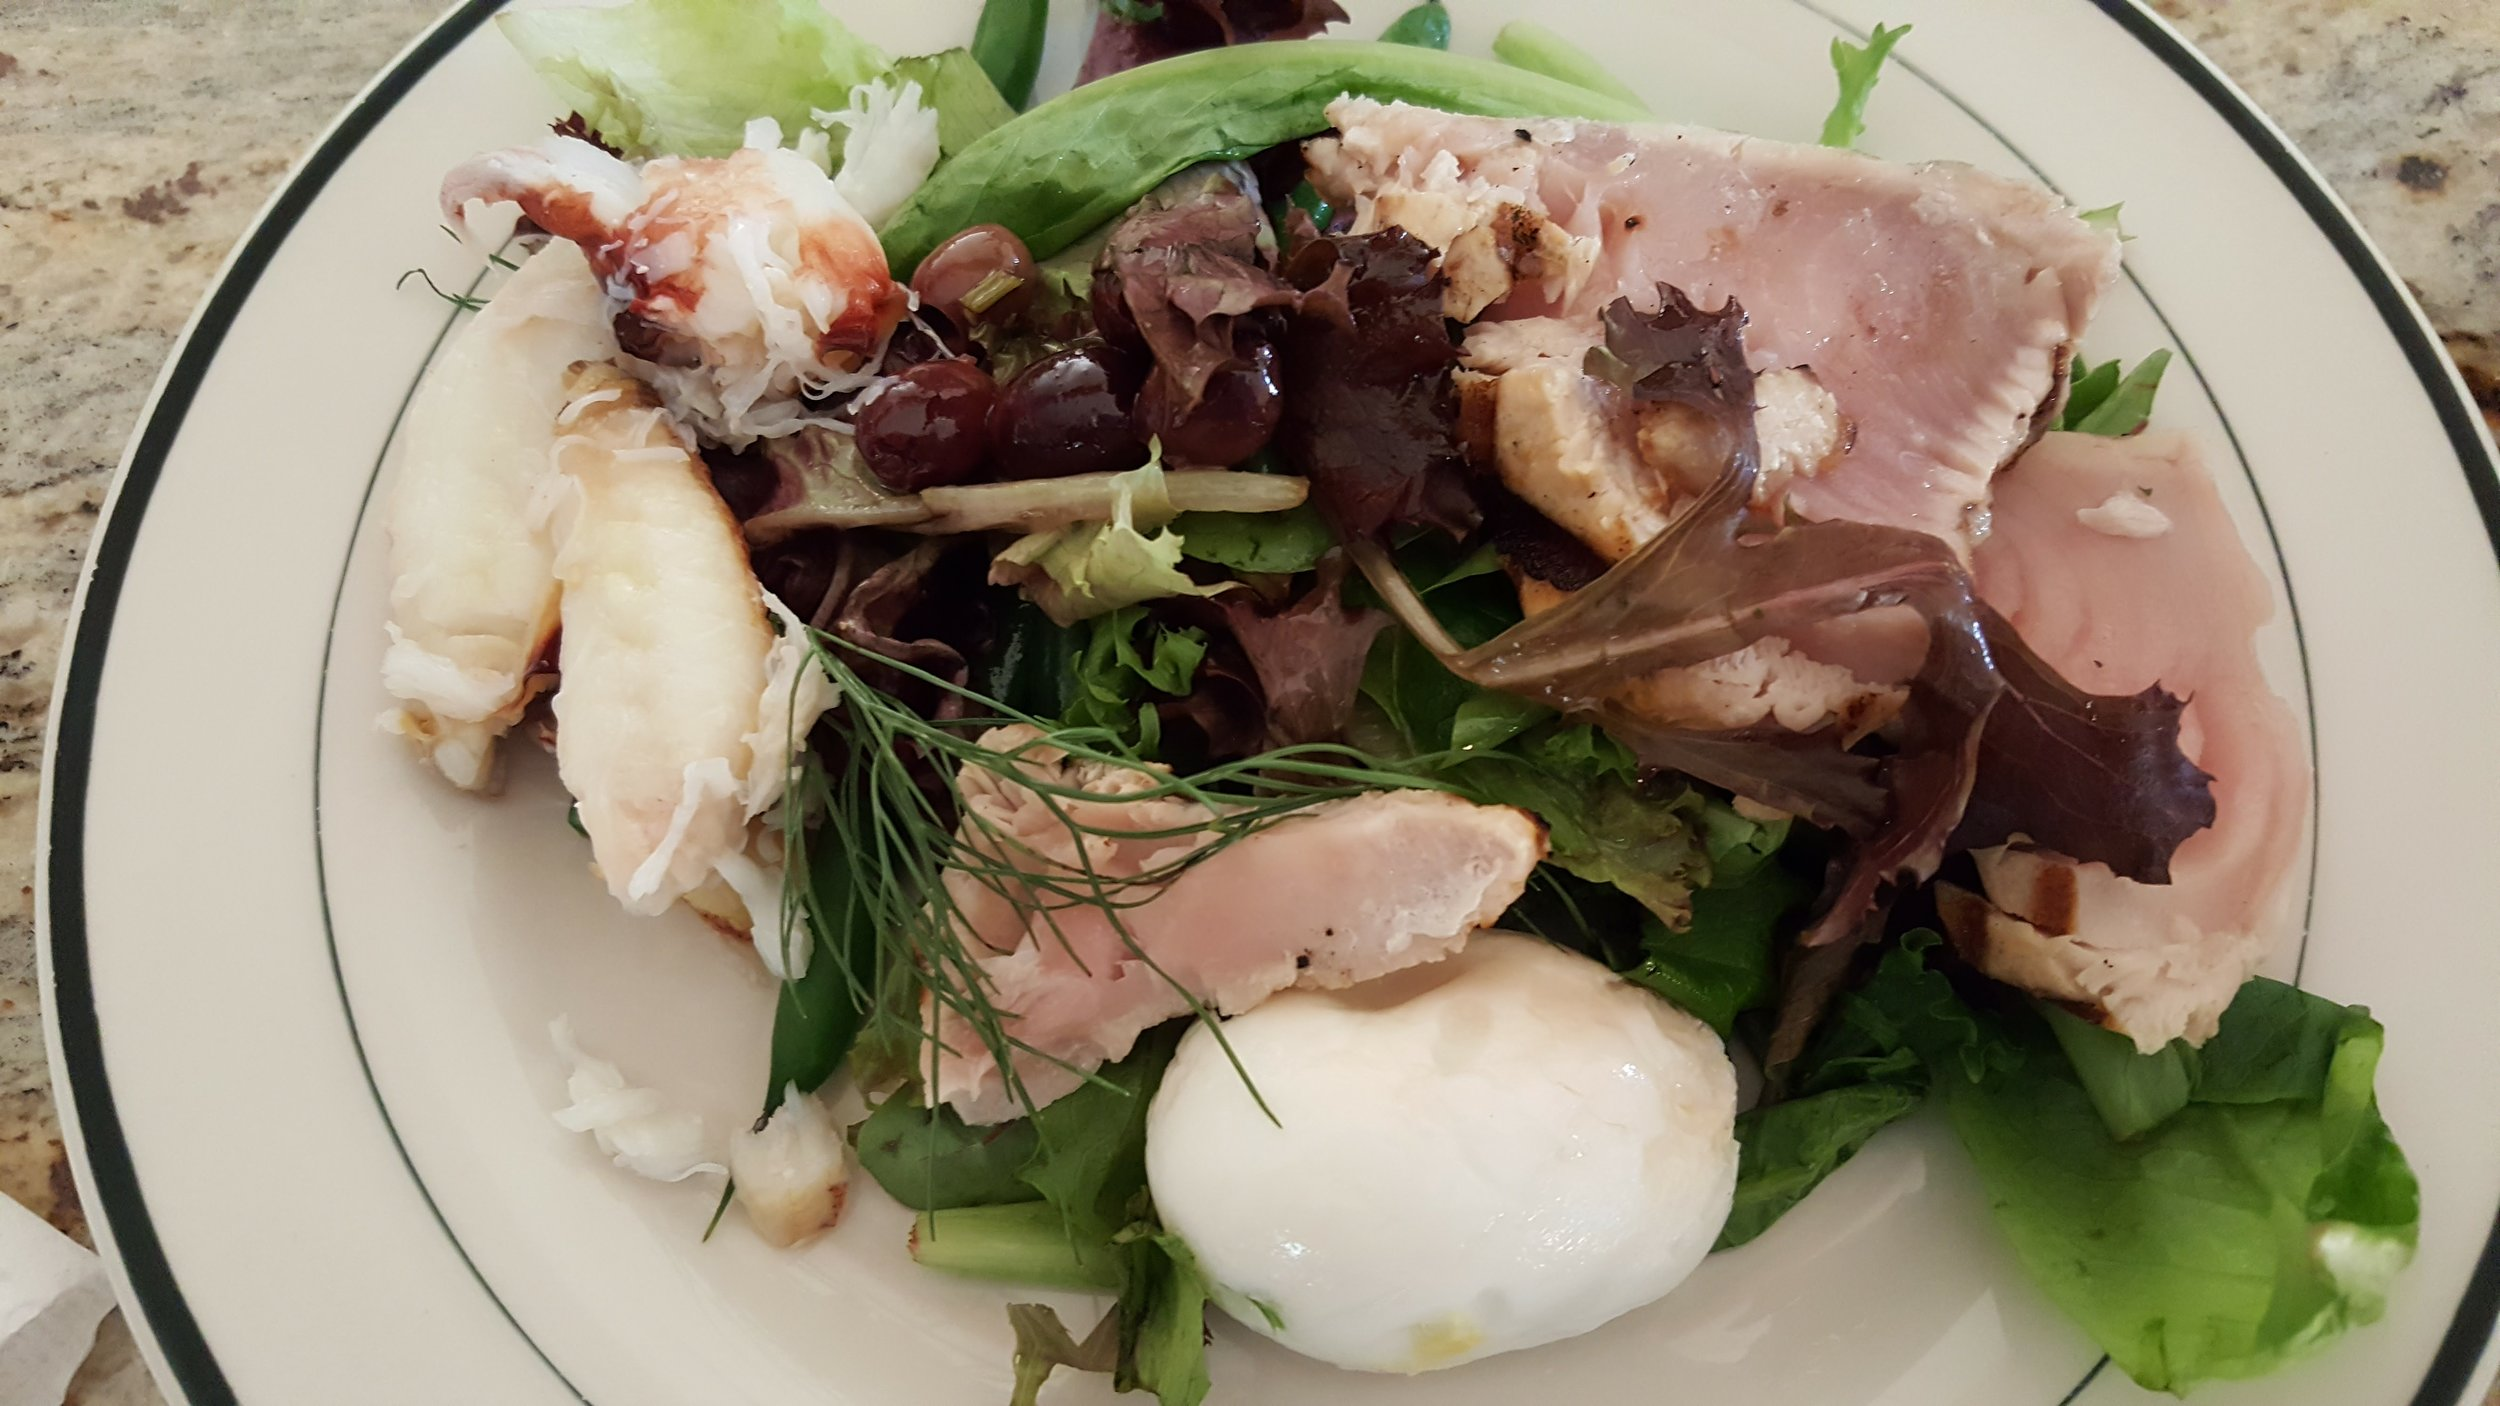 Brought lunch home from Local Ocean seafoods - one of my favorite dishes - Nicoise salad